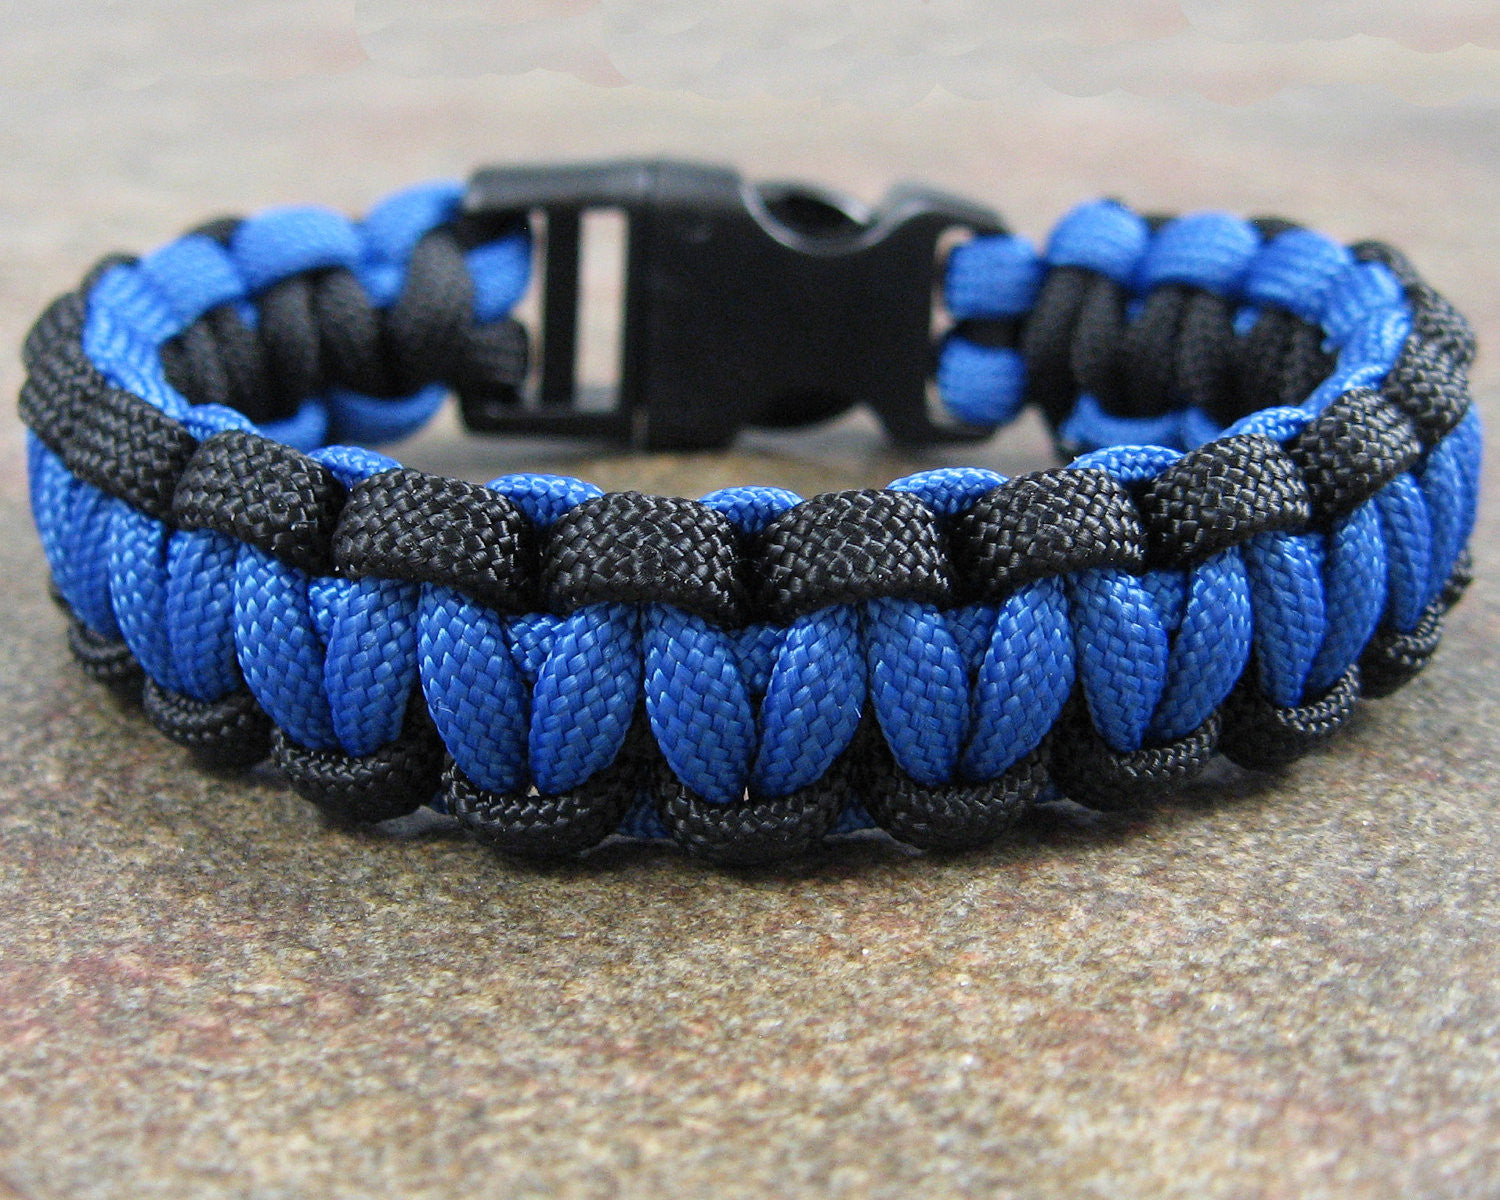 thin line bands design does bracelet what blog blue bulk wristbands now represent in